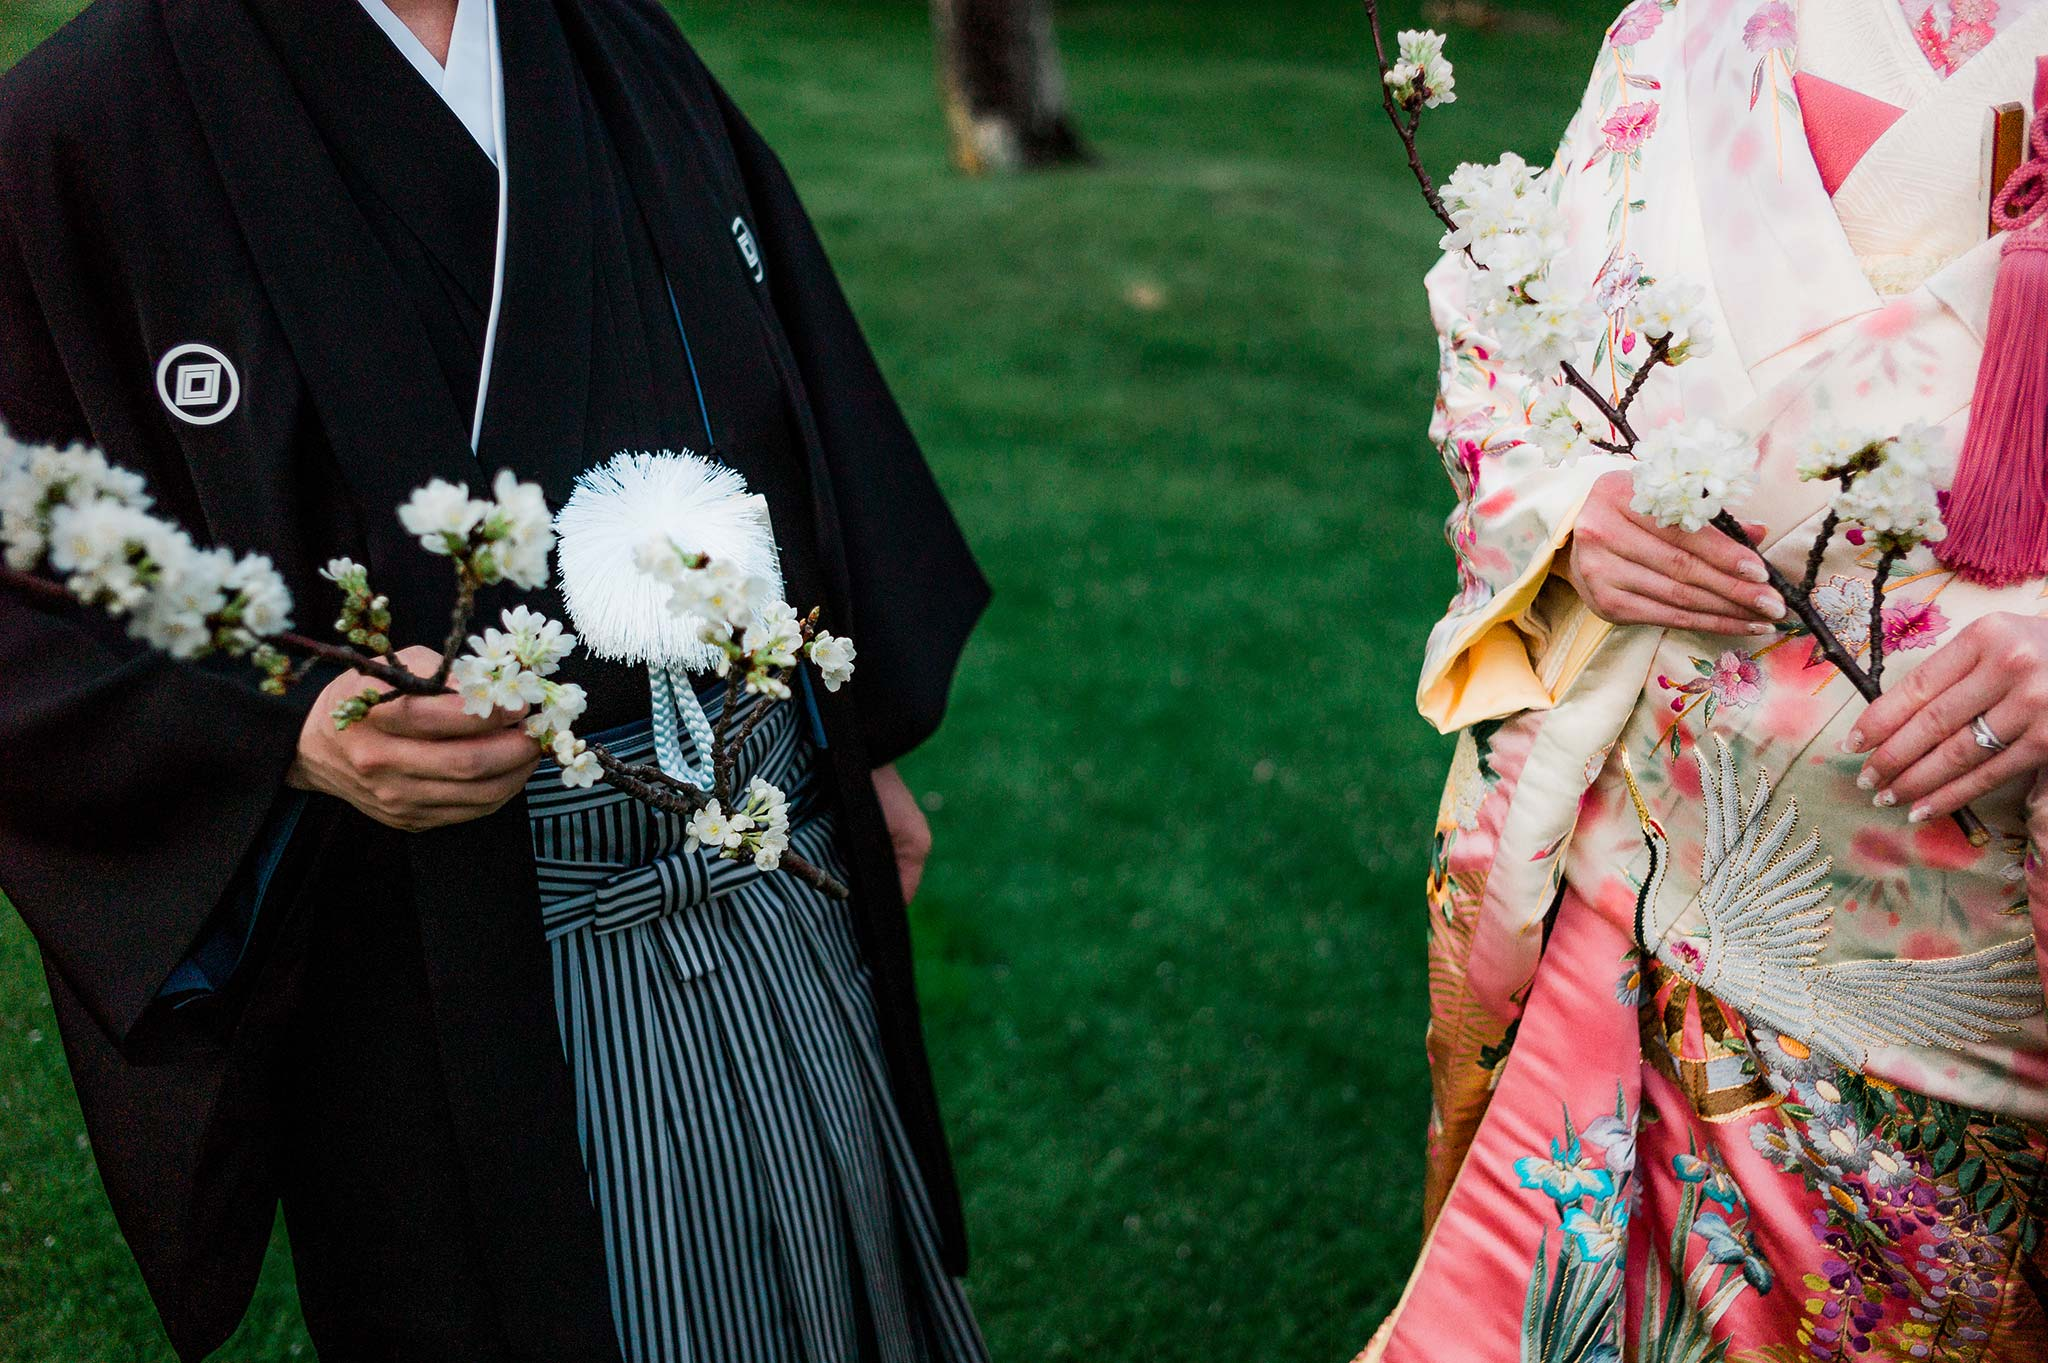 Osaka-Banpaku-Geihinkan-Wedding-reception-kimono-bride-groom